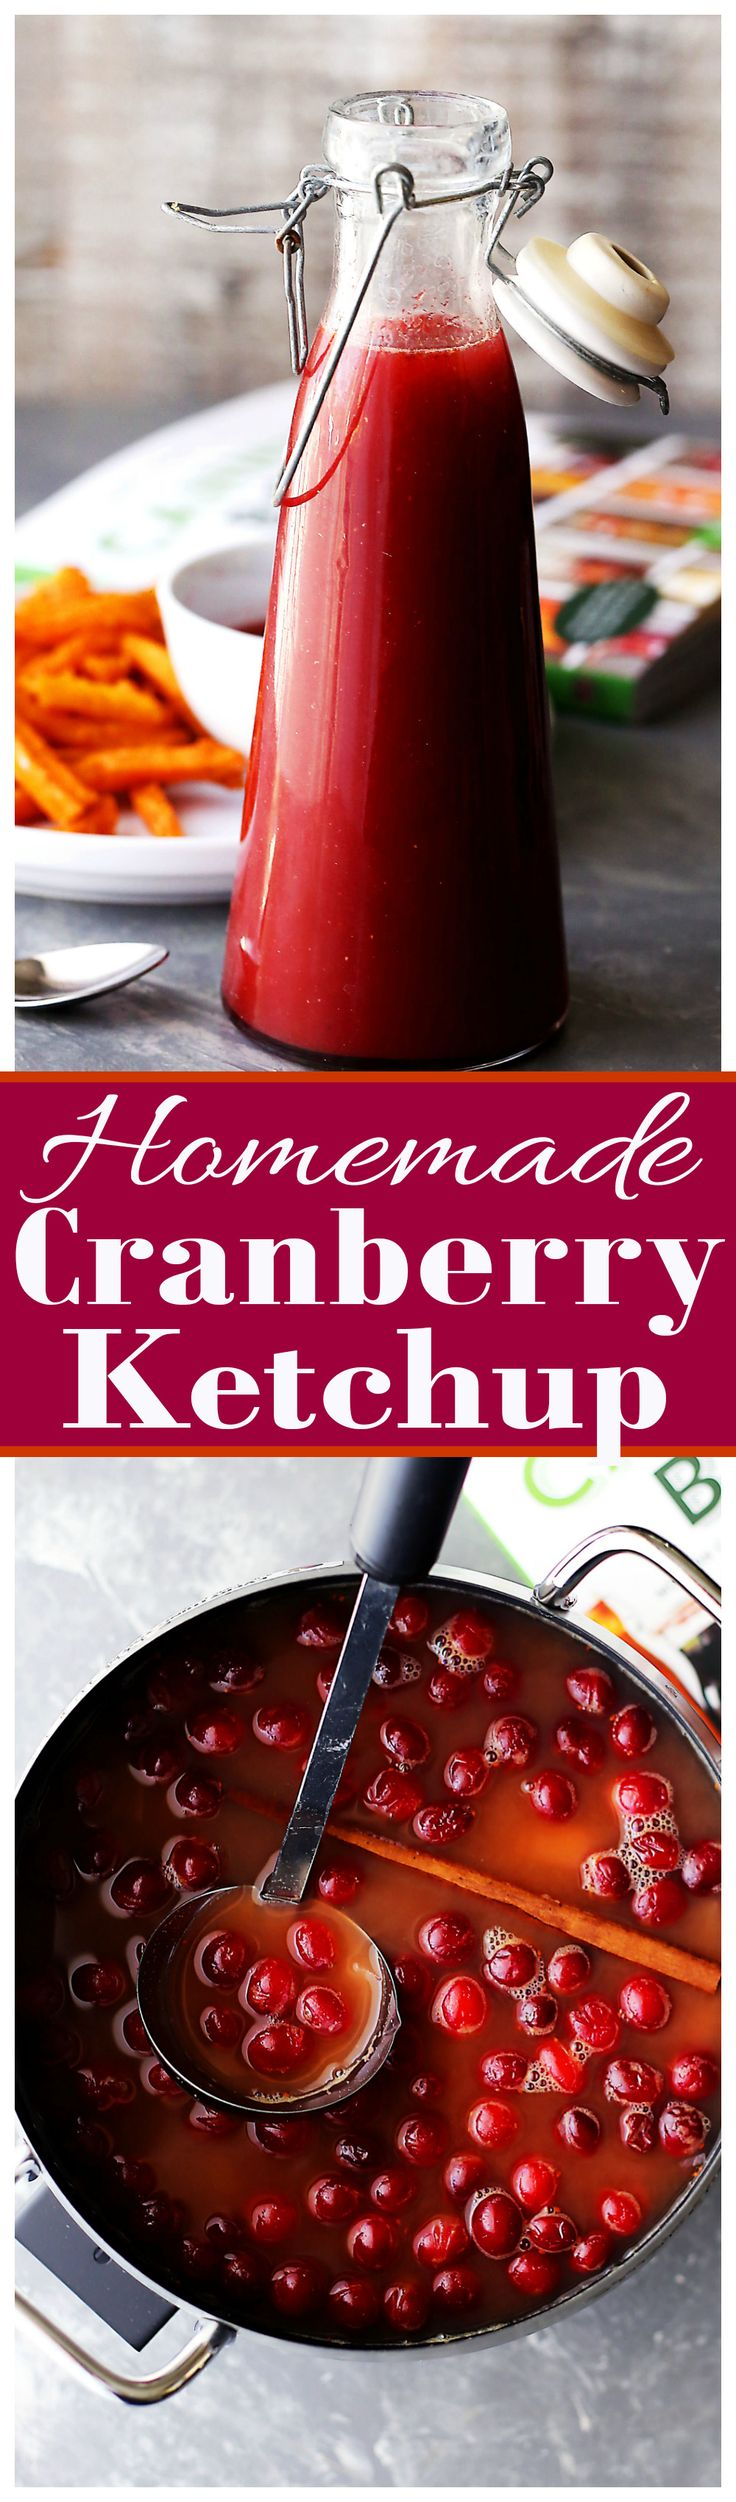 Cranberry Ketchup Recipe - Sweet and tangy homemade ketchup with delicious fall spices and cranberries!